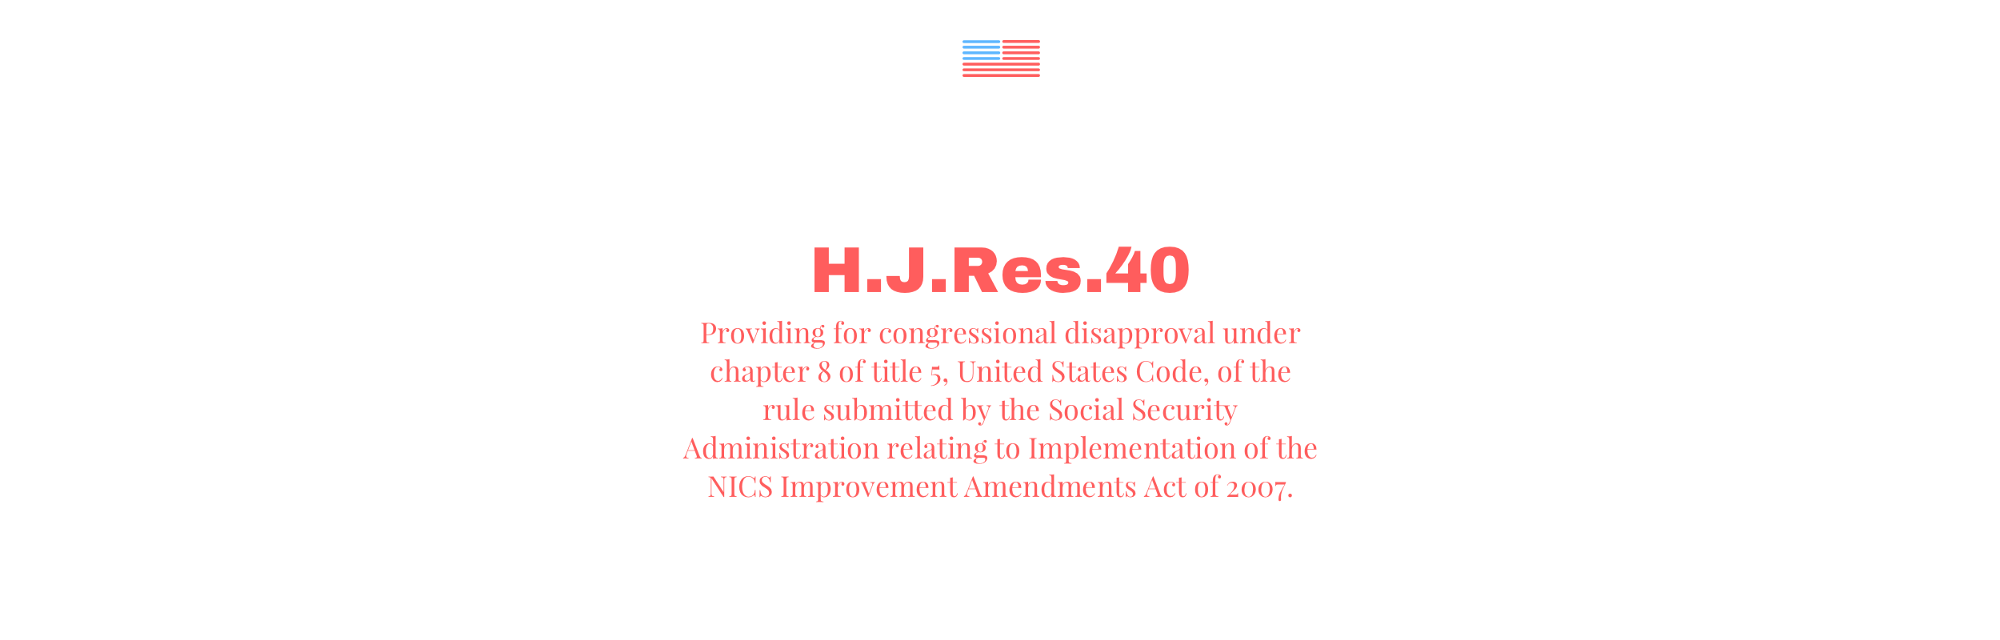 H.J.Res.40 — Providing for congressional disapproval under chapter 8 of  title 5, United States Code, of the rule submitted by the Social Security